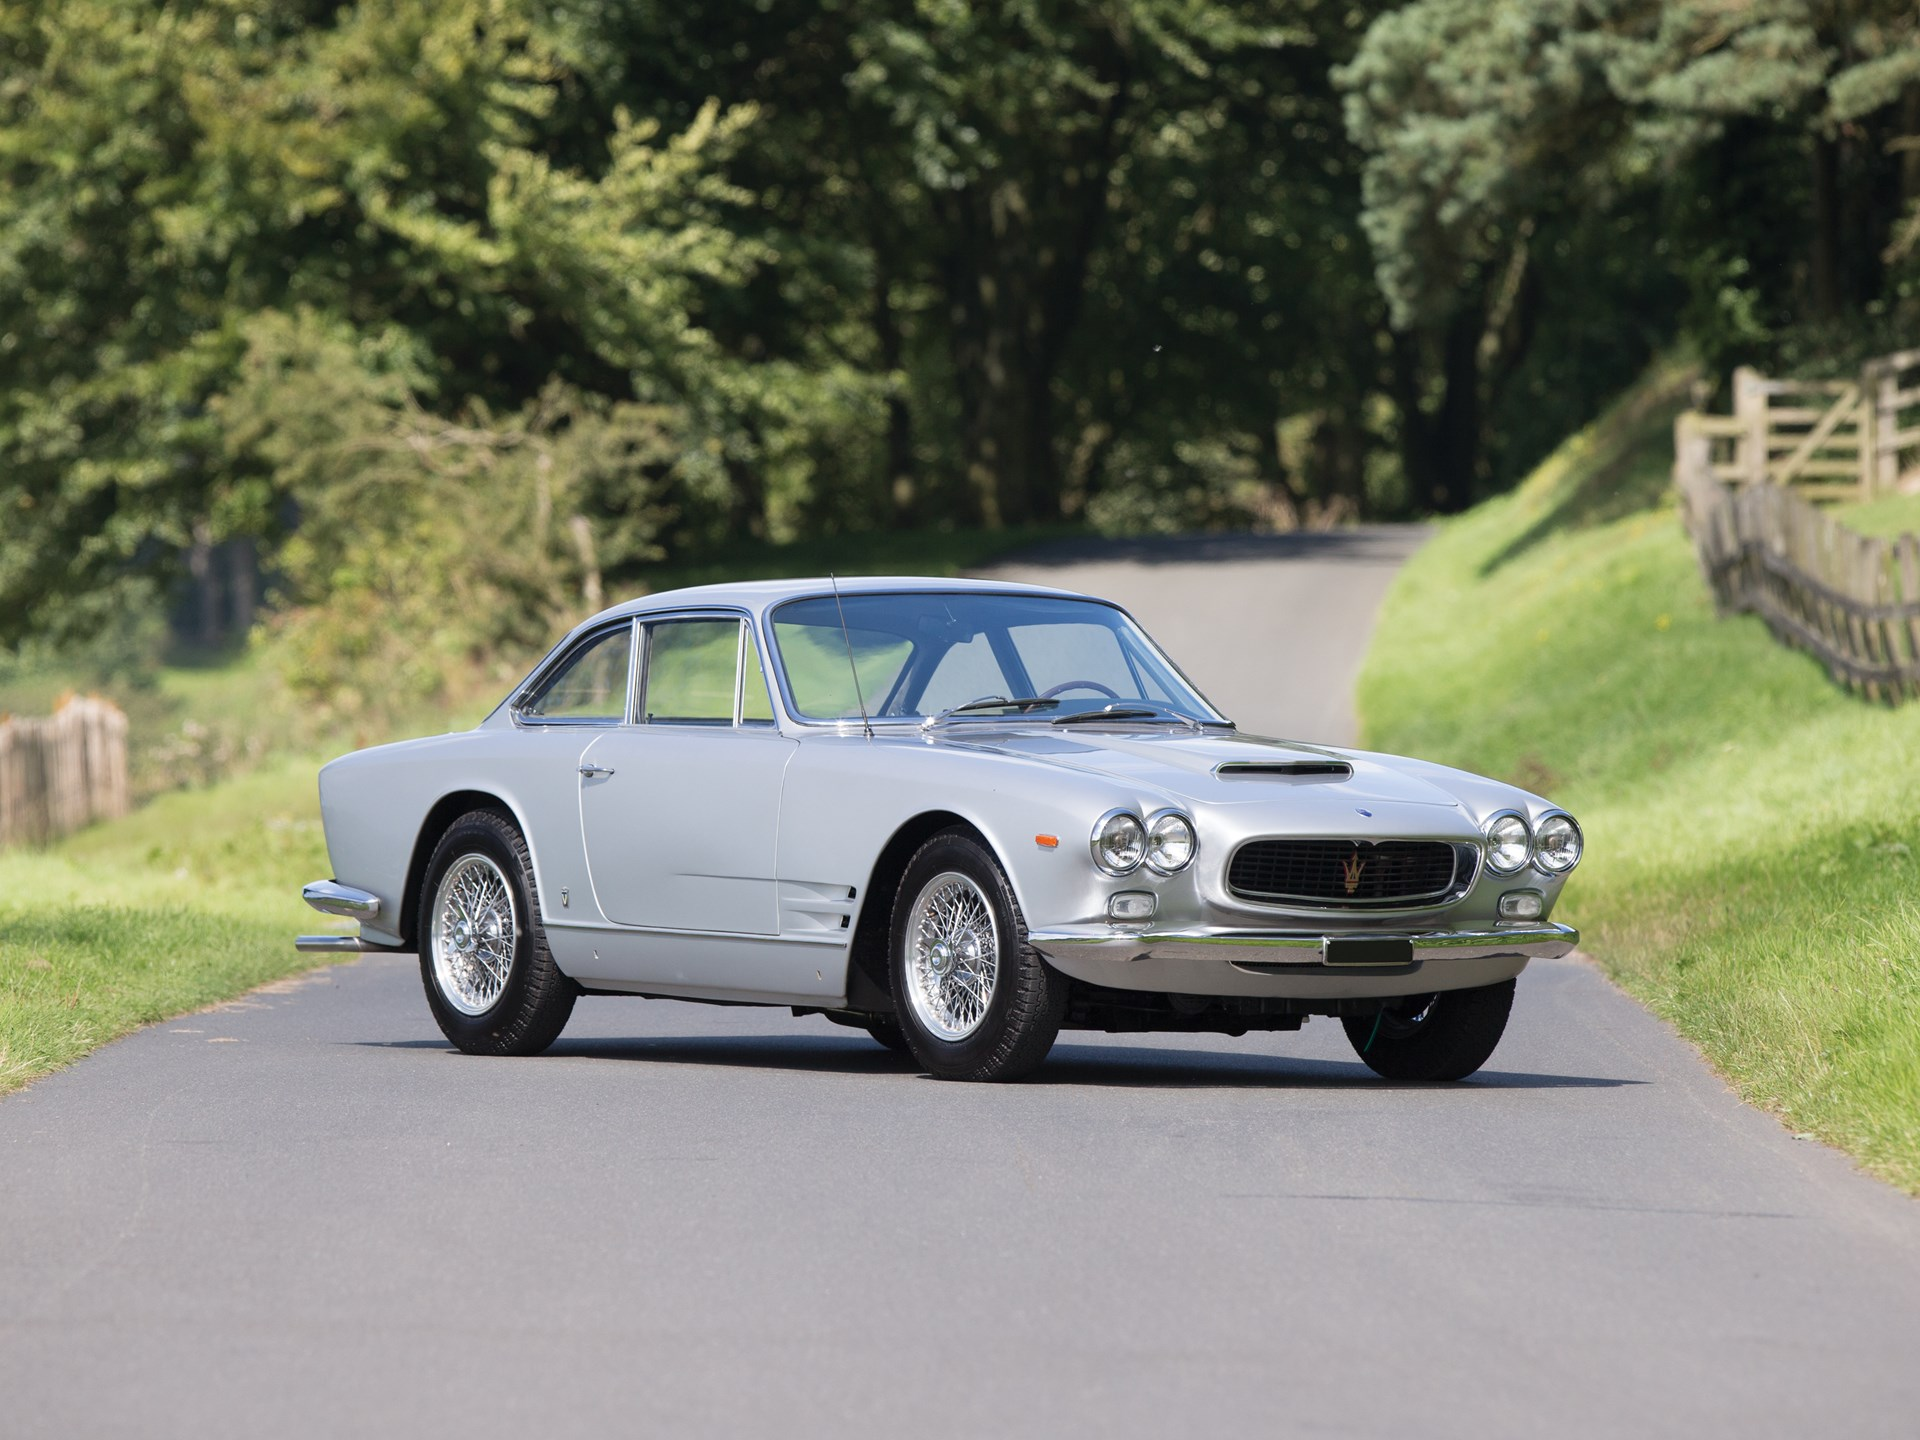 RM Sotheby's - 1964 Maserati Sebring 3500 GTi Series I by ...